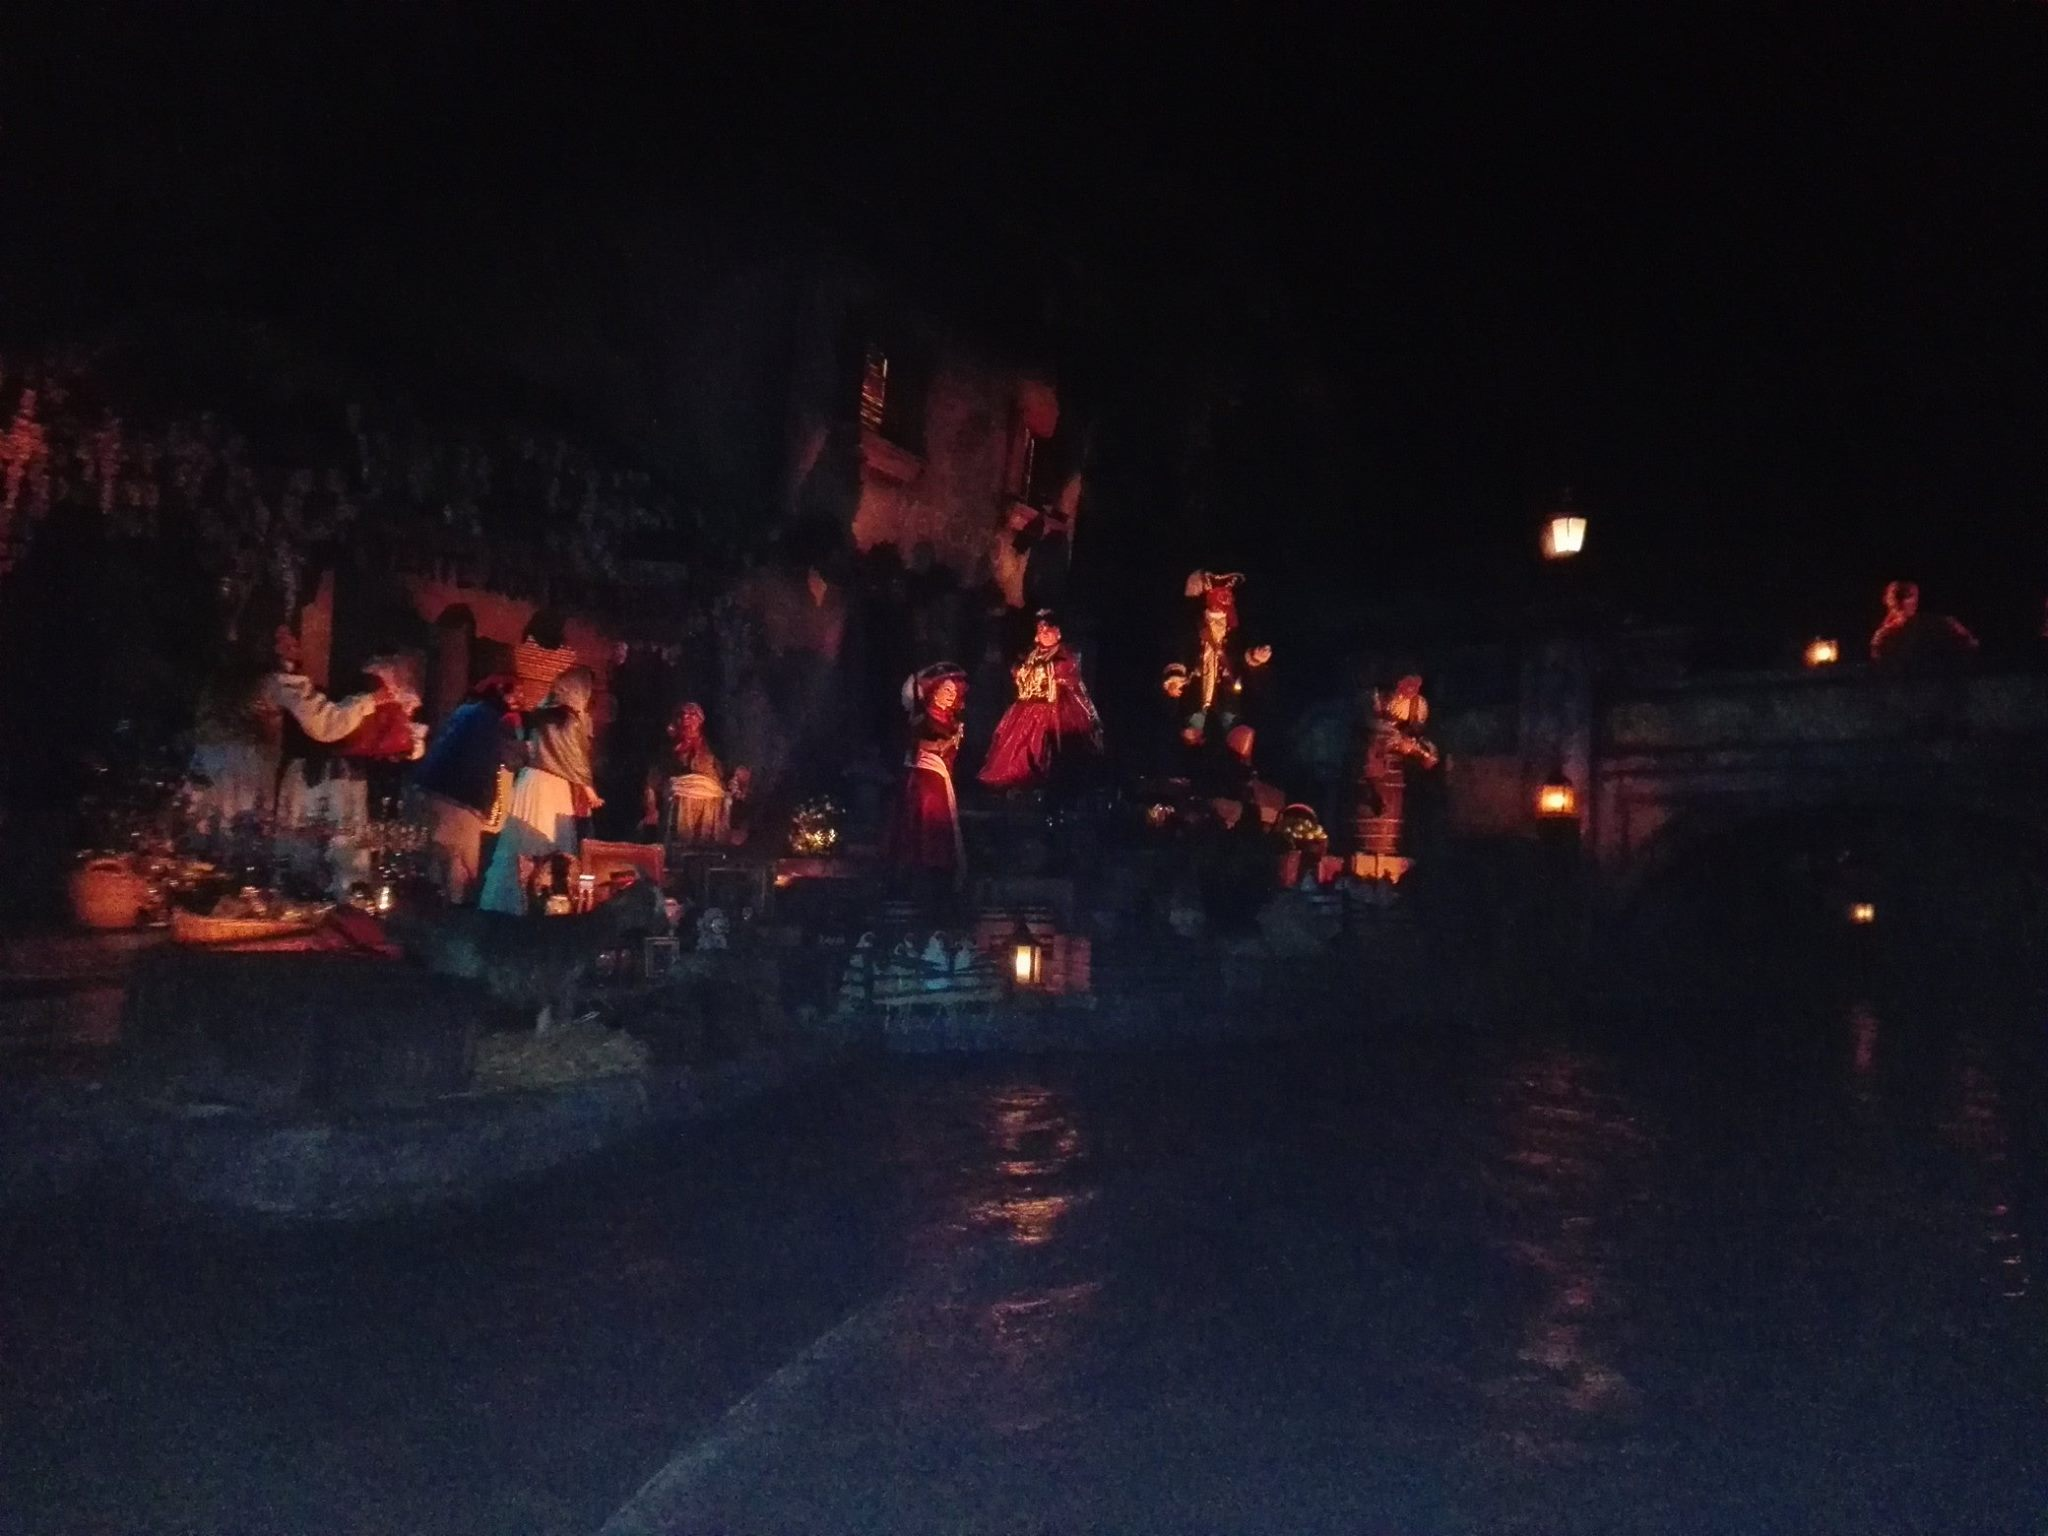 Scènes au village - Pirates des Caraïbes - Disneyland Paris